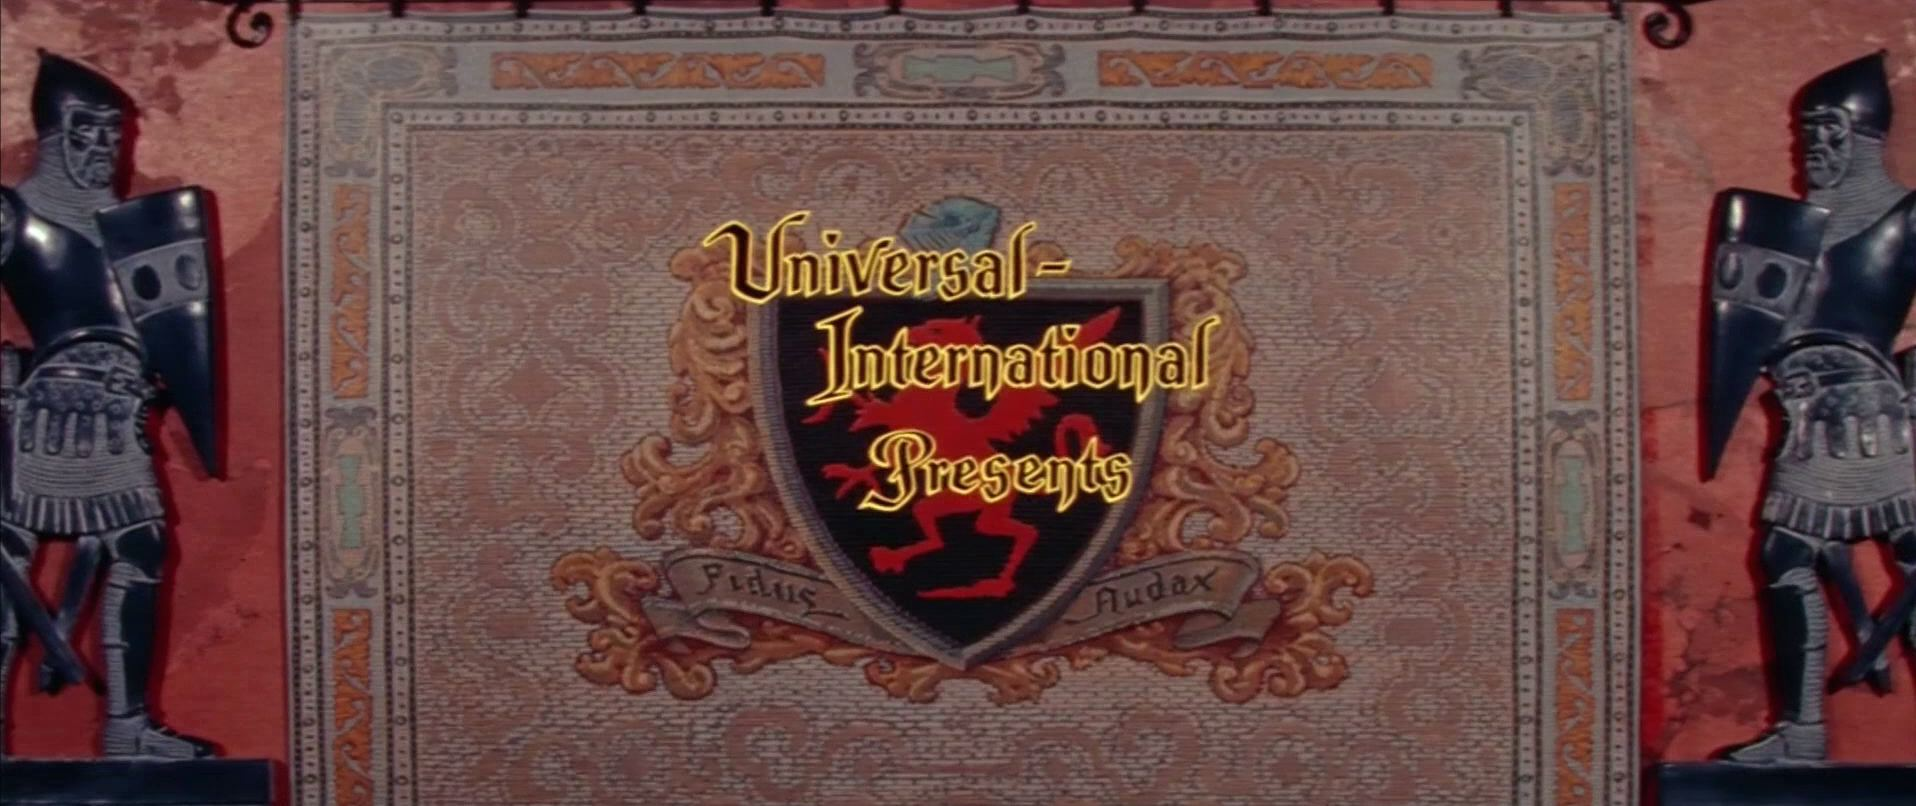 Main title from The Black Shield of Falworth (1954) (3). Universal International presents